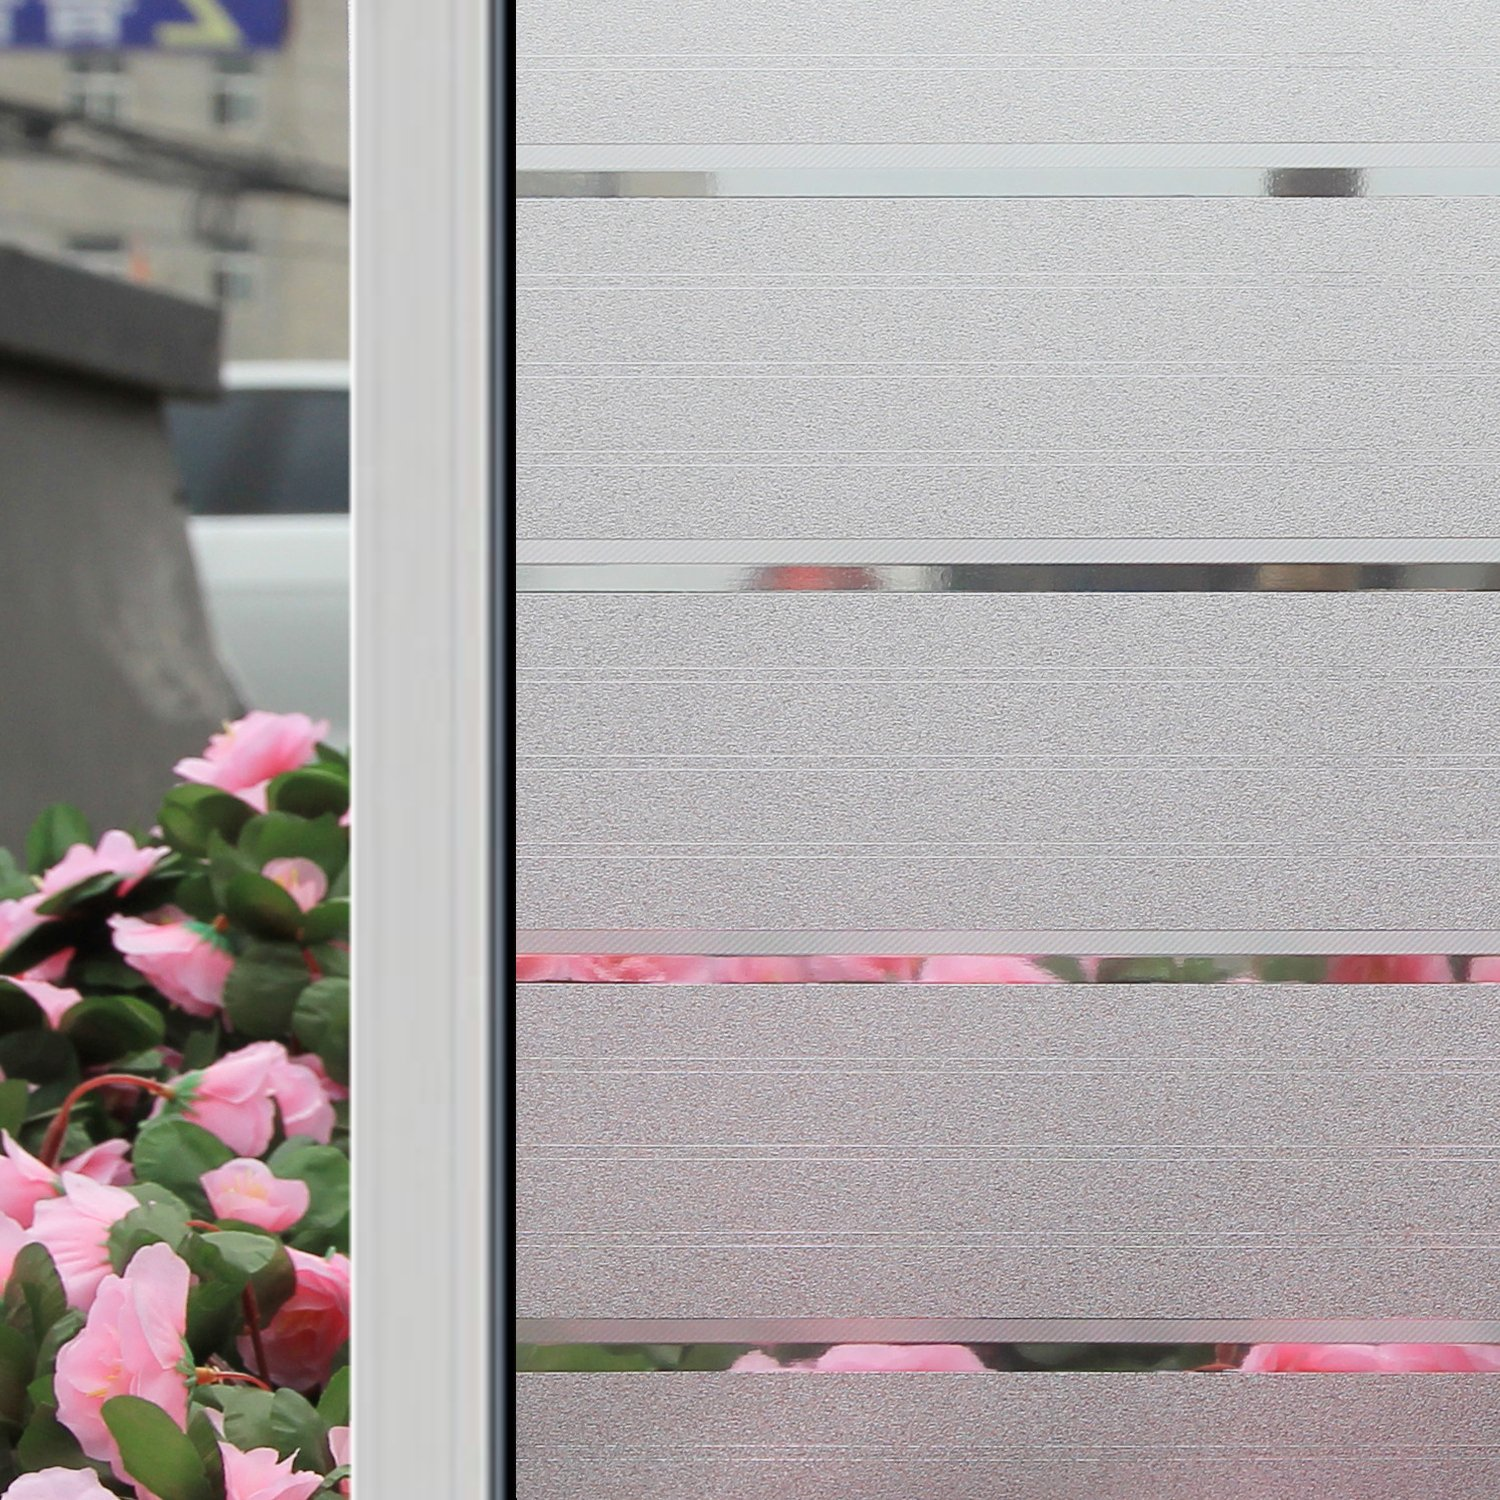 Coavas Clear Strip Static Window Cling Frosted Window Film Privacy Reject UV 17.778.7 inches